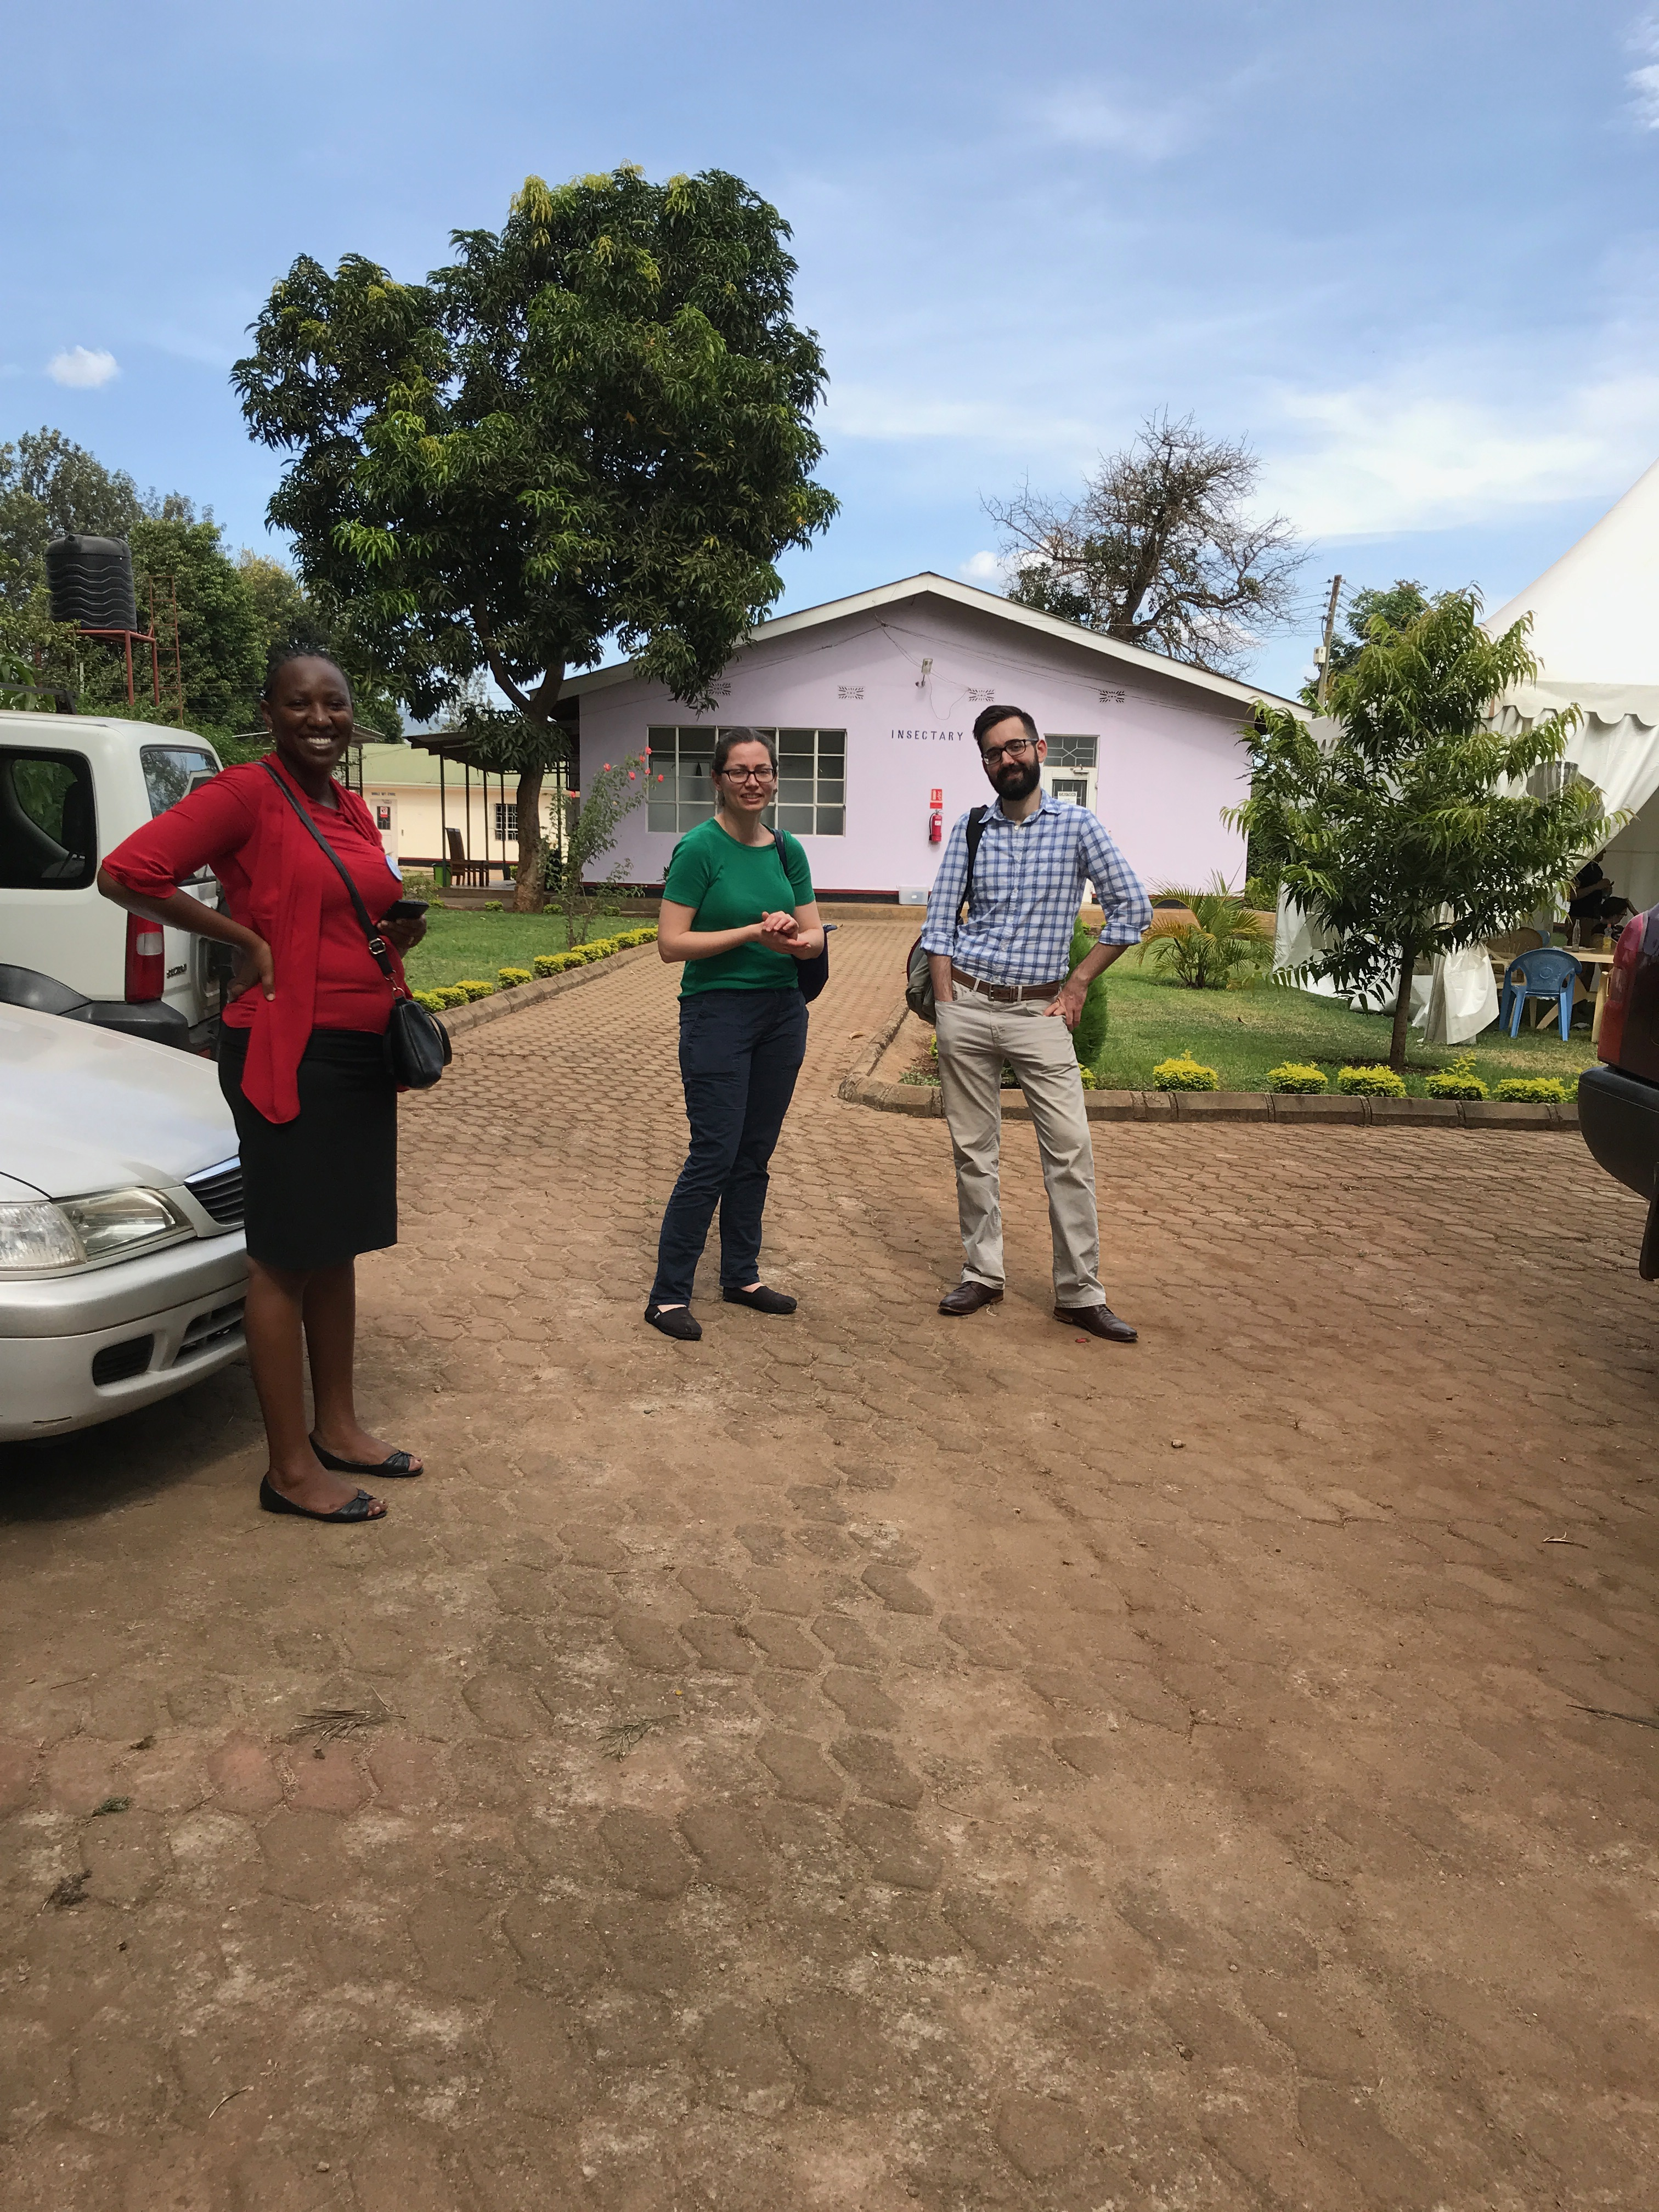 Graduate student working with research partners in Moshi, Tanzania